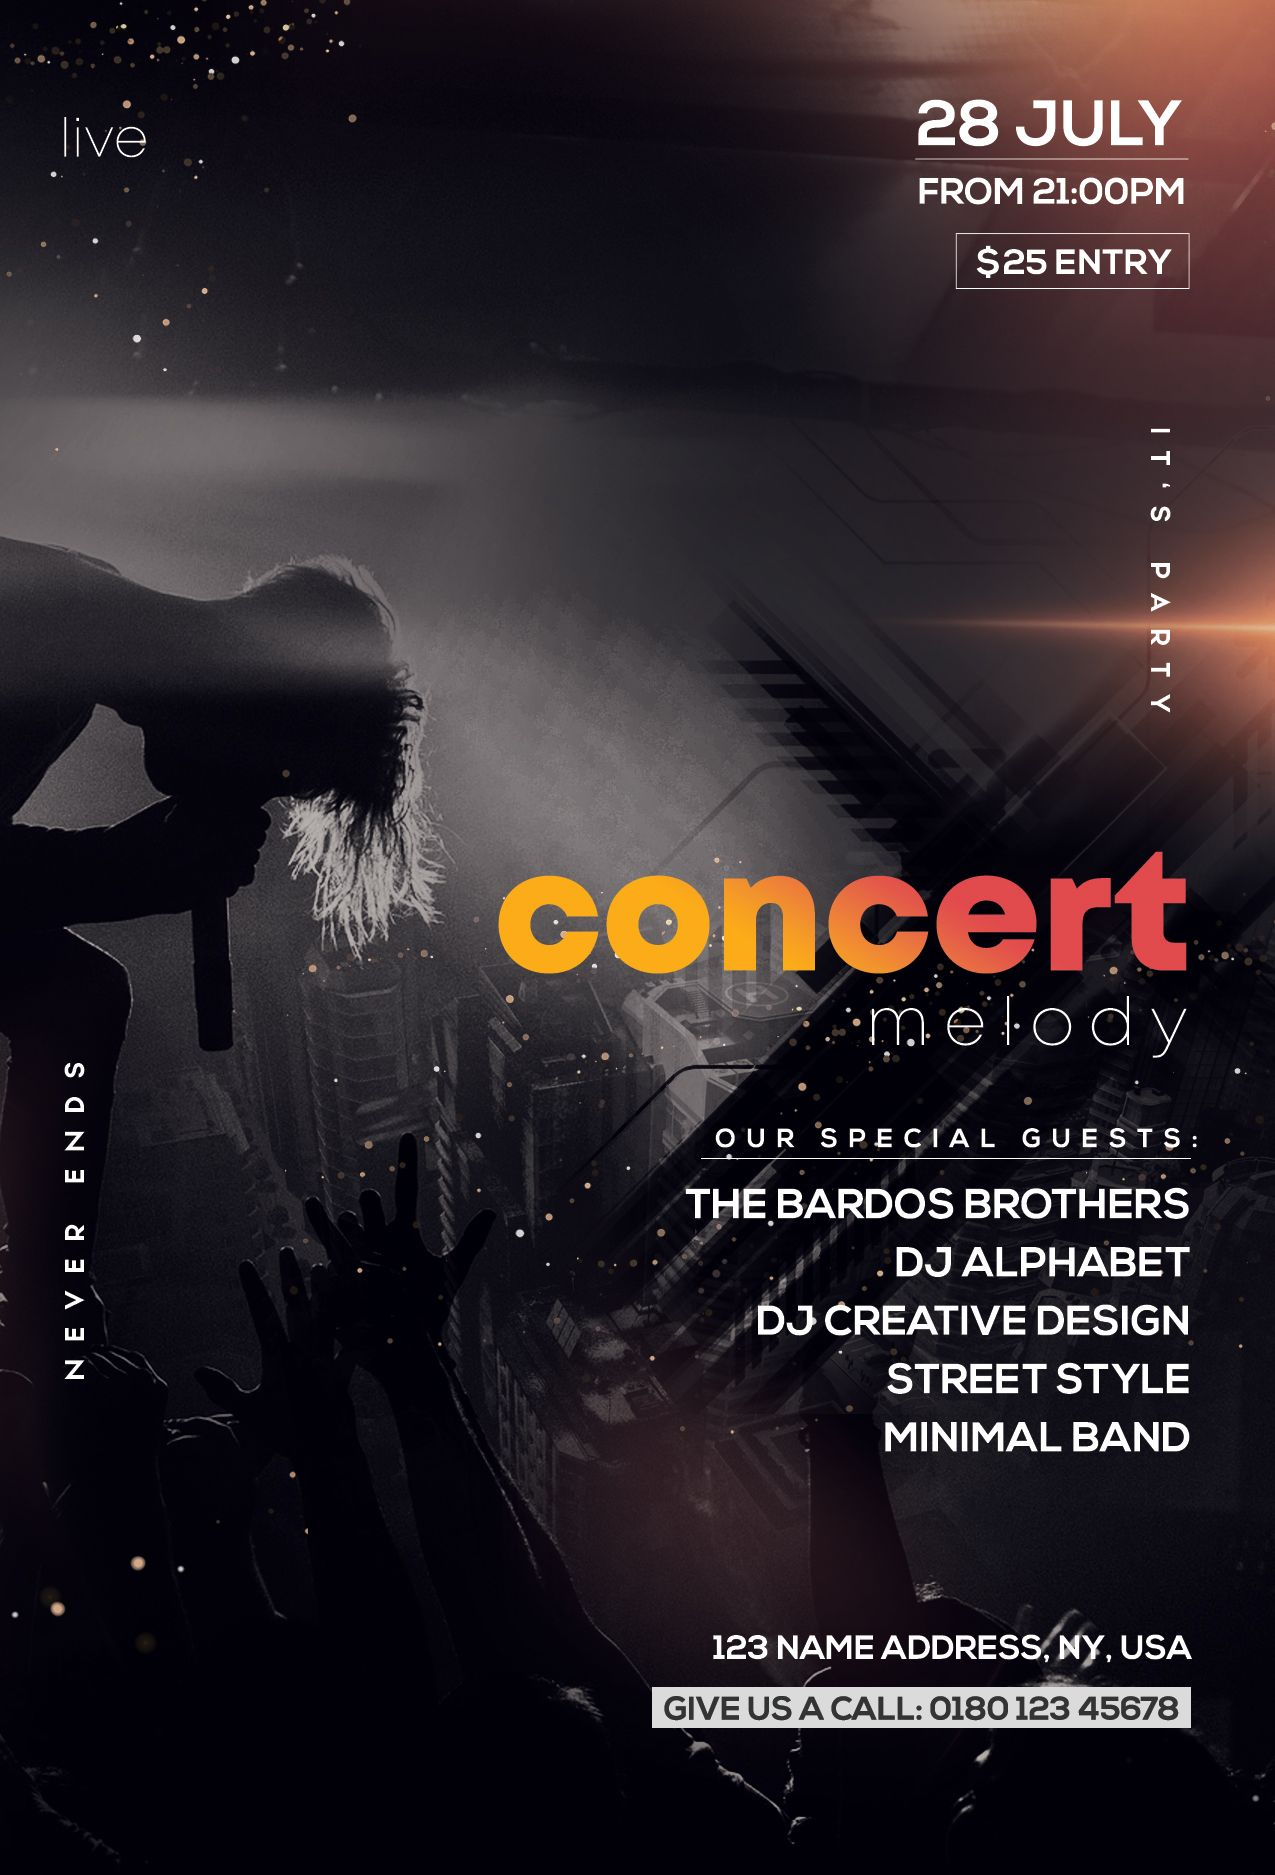 Free Concert Melody Psd Flyer Template Pixelsdesign Concert Flyer Free Psd Flyer Templates Psd Flyer Templates